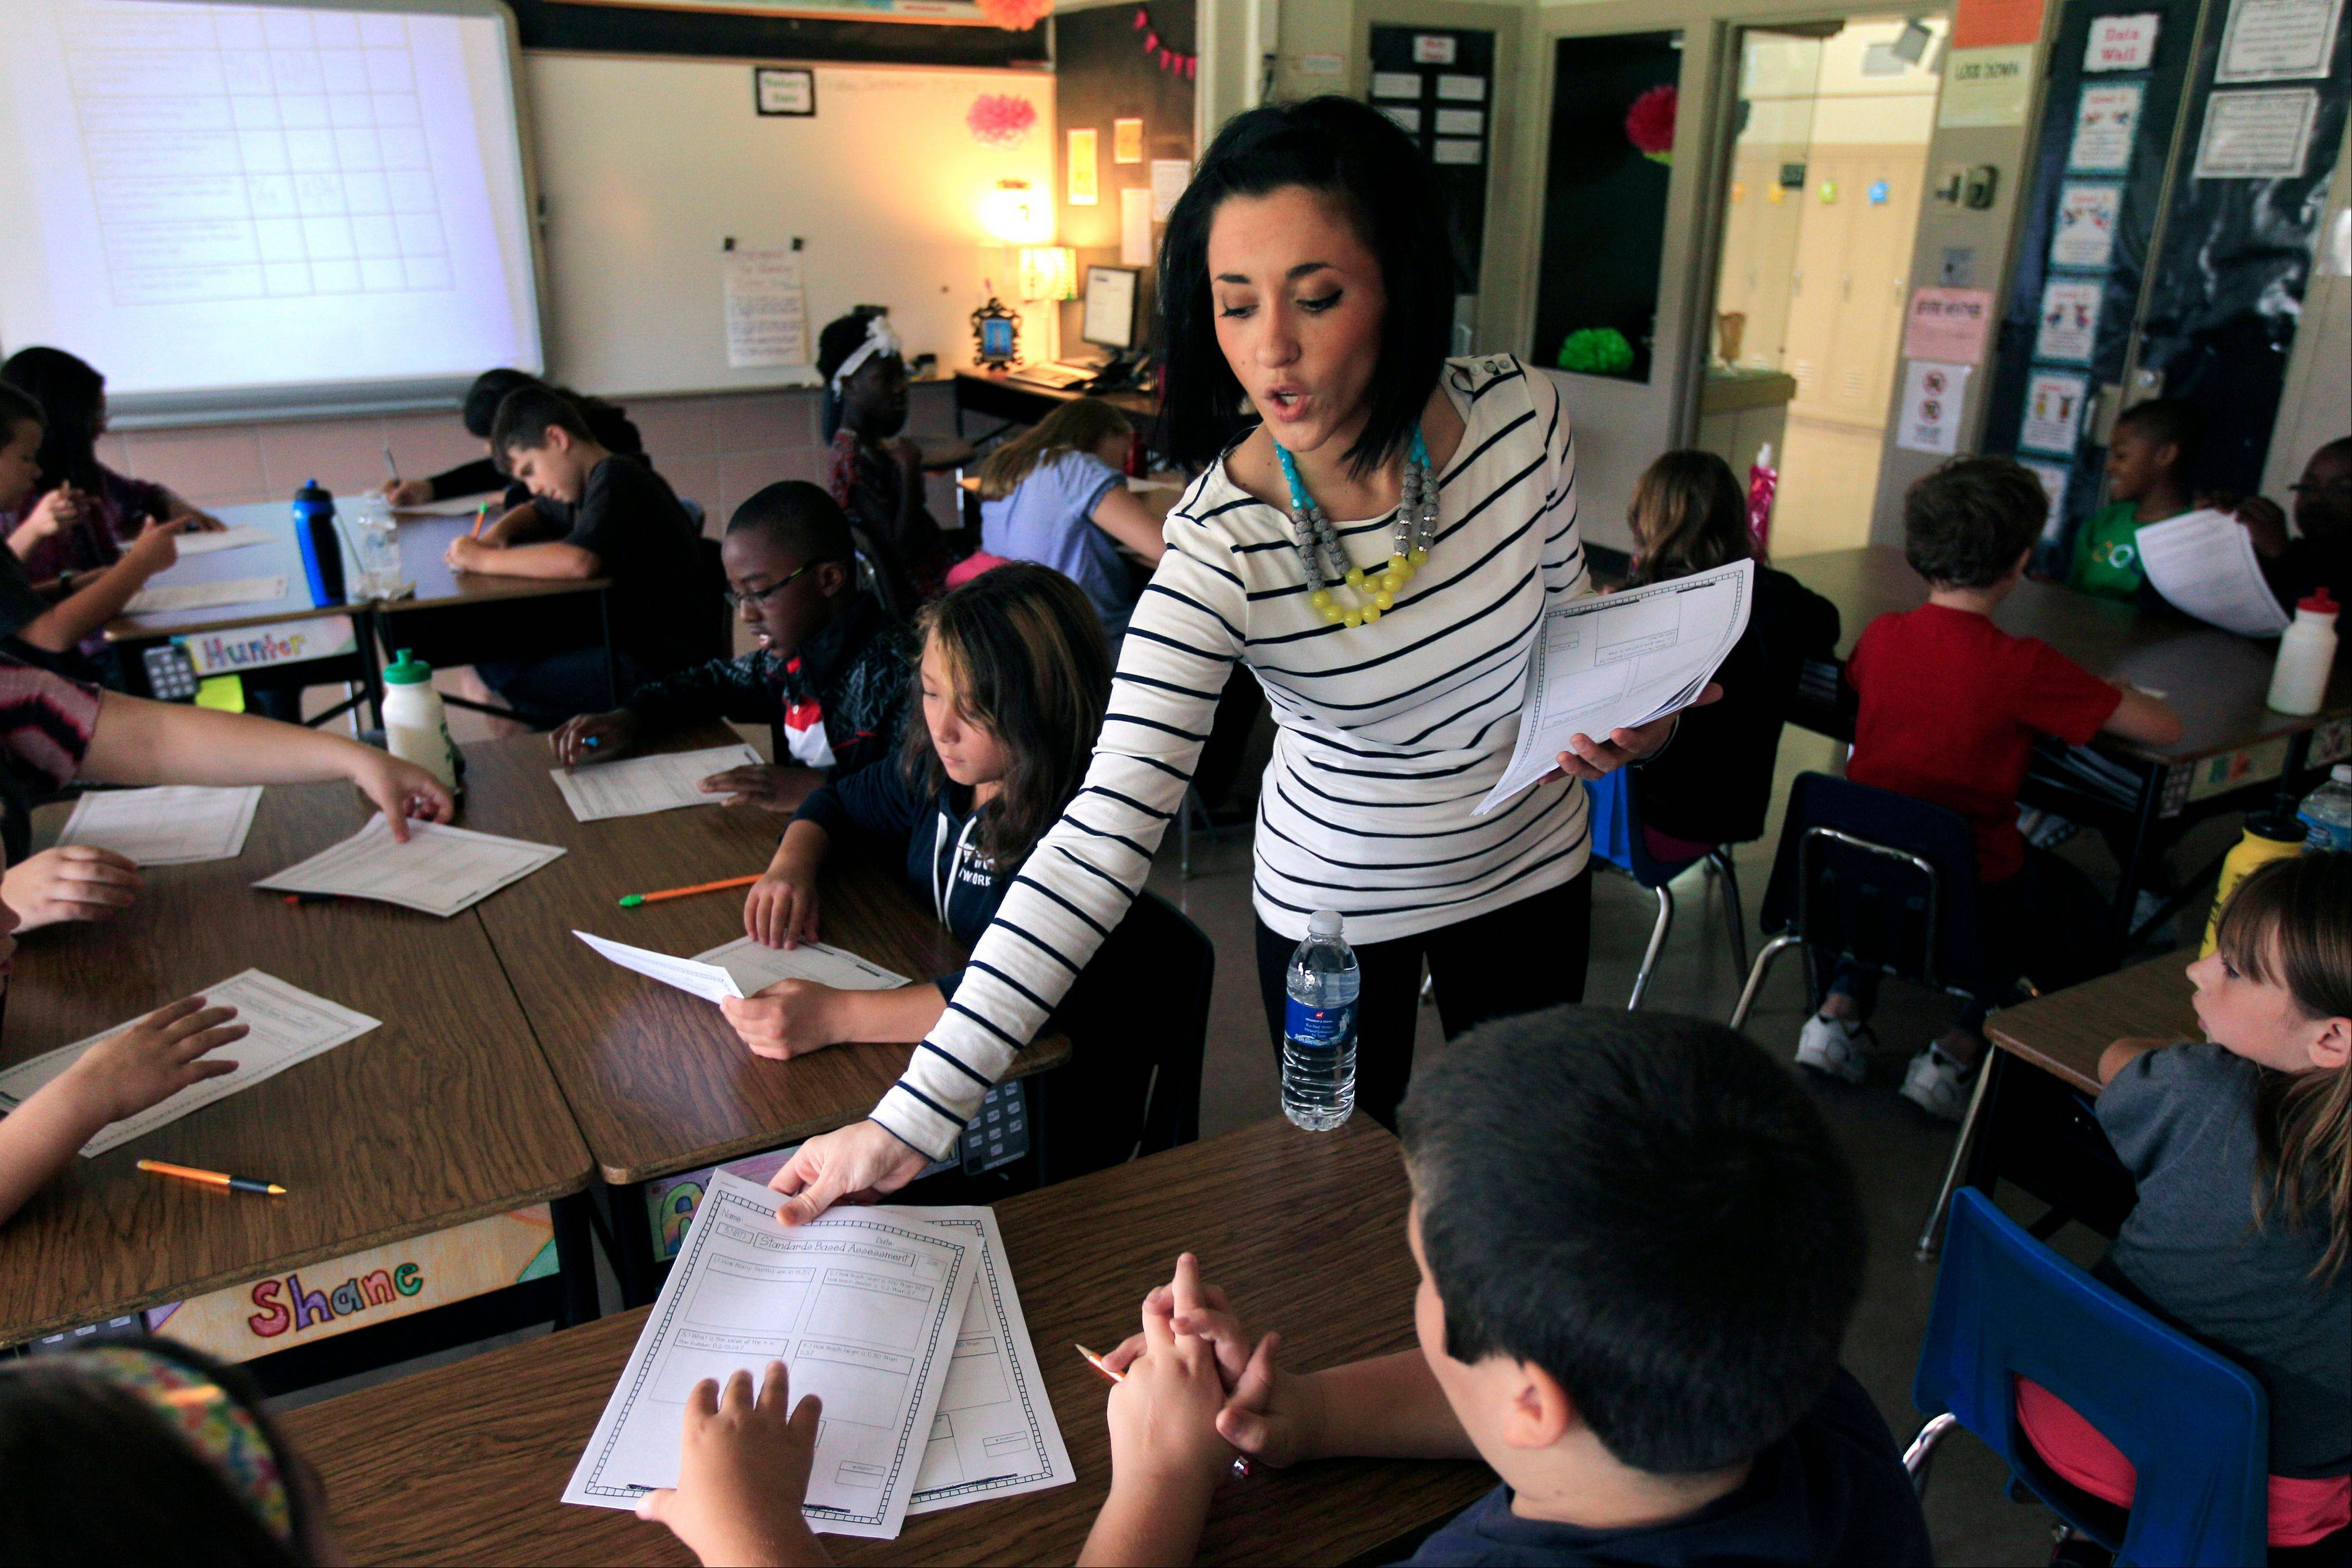 Kristine Nannini passes out student data sheets she created to her fifth grade class at McGrath Elementary in Grand Blanc, Mich.